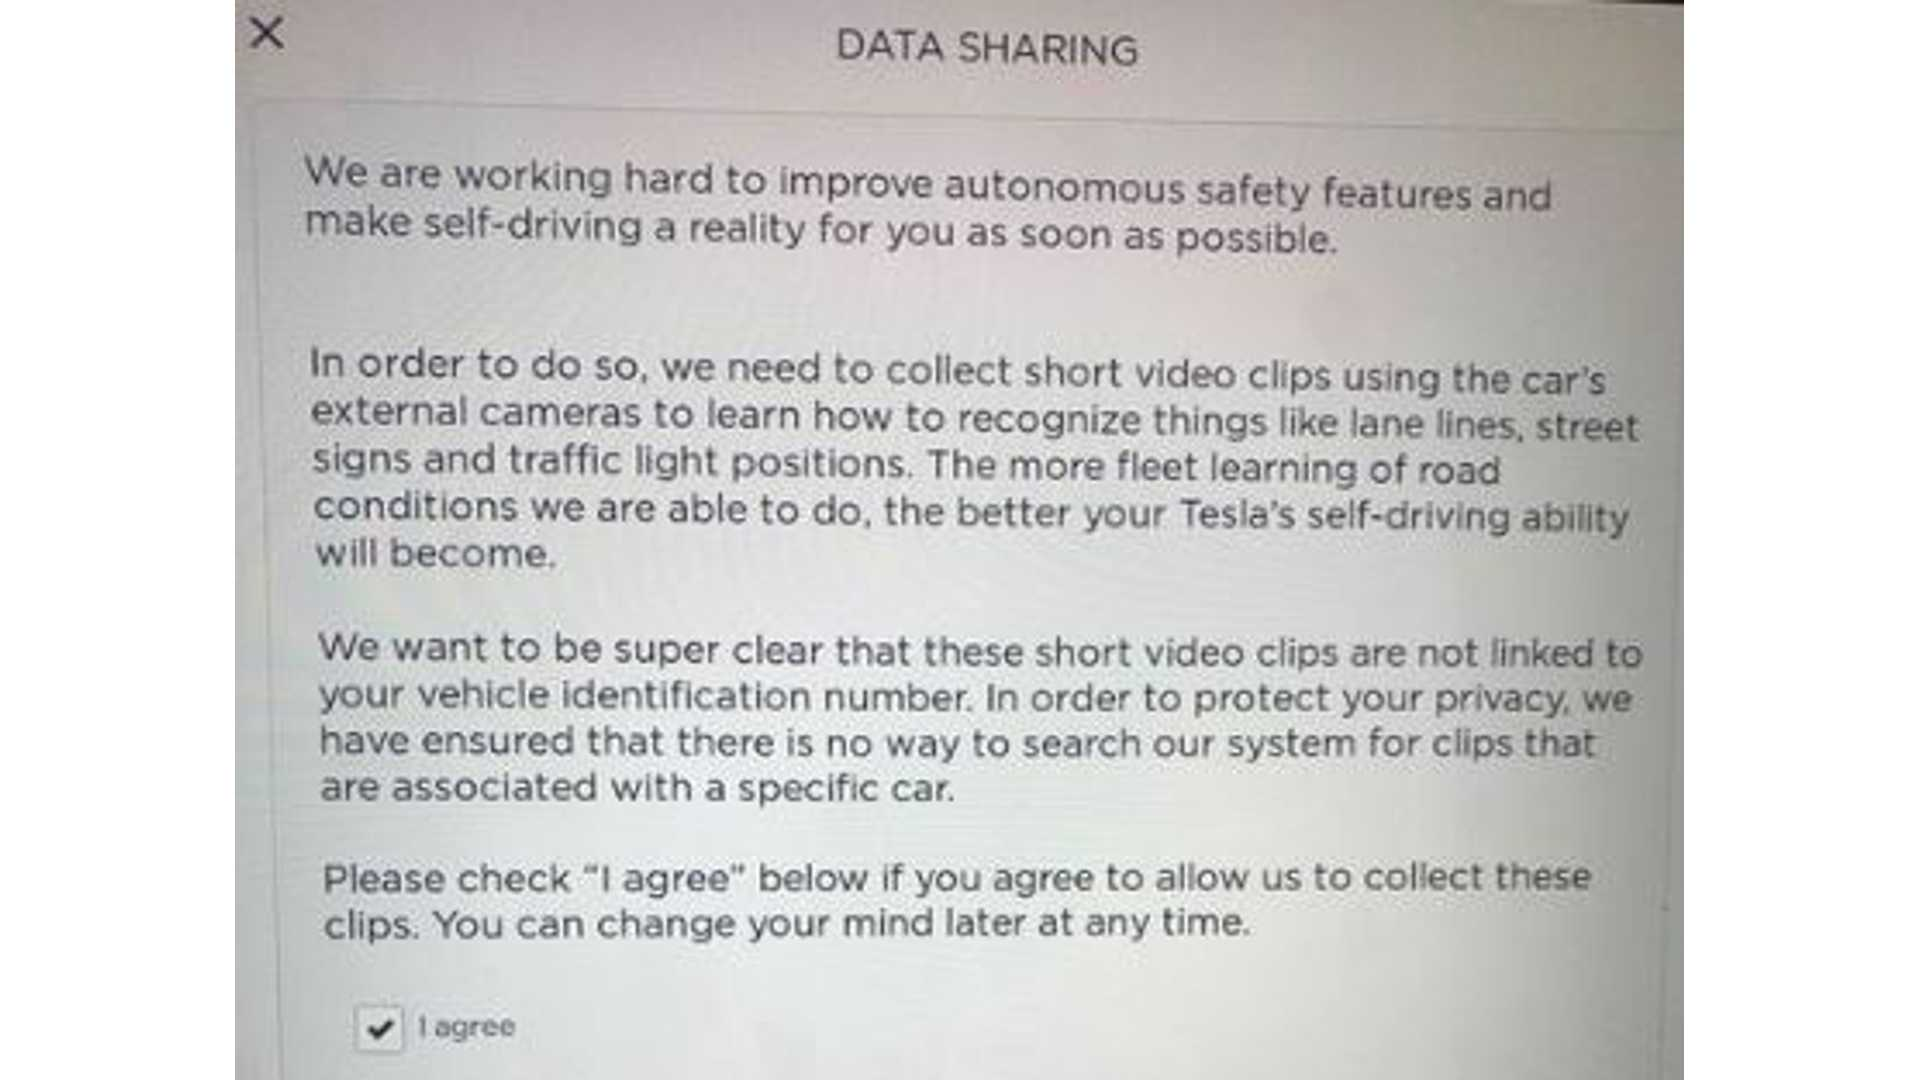 Tesla To Improve Autopilot By Collecting Short Video Clips